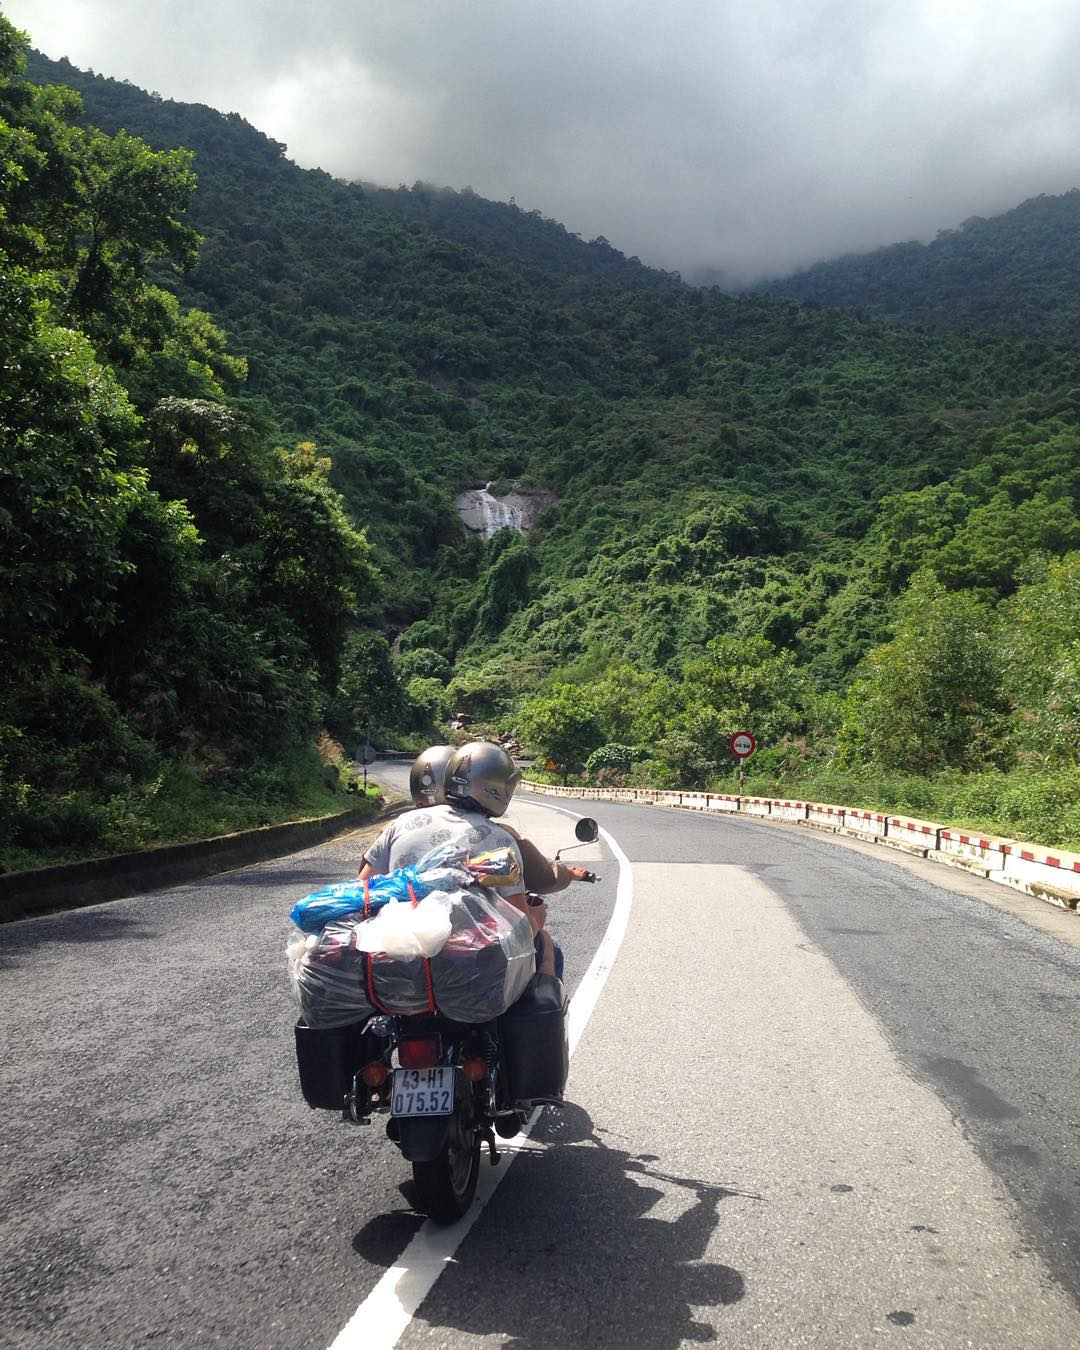 The Hai Van Pass between Danang and Hue